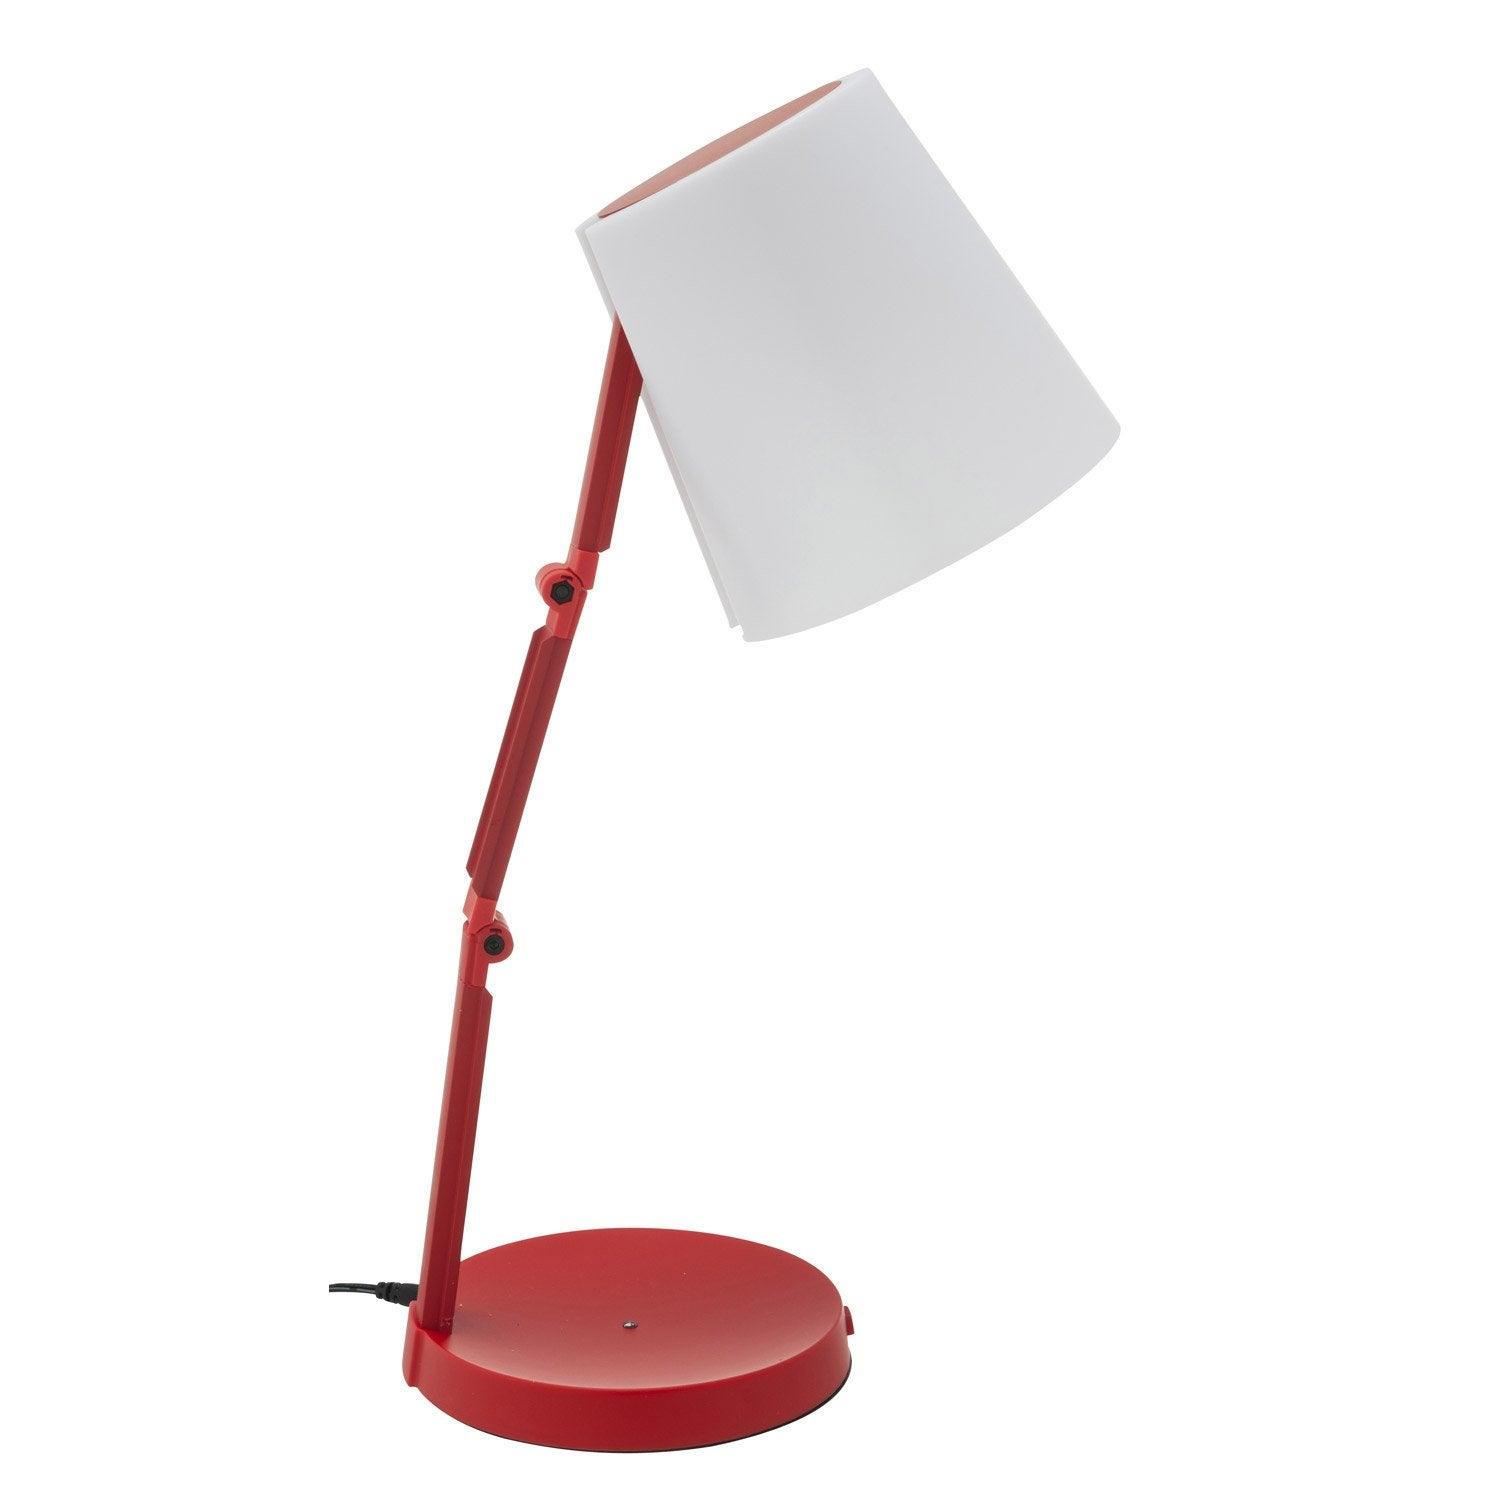 lampe de bureau poser rouge led akimi inspire leroy merlin. Black Bedroom Furniture Sets. Home Design Ideas